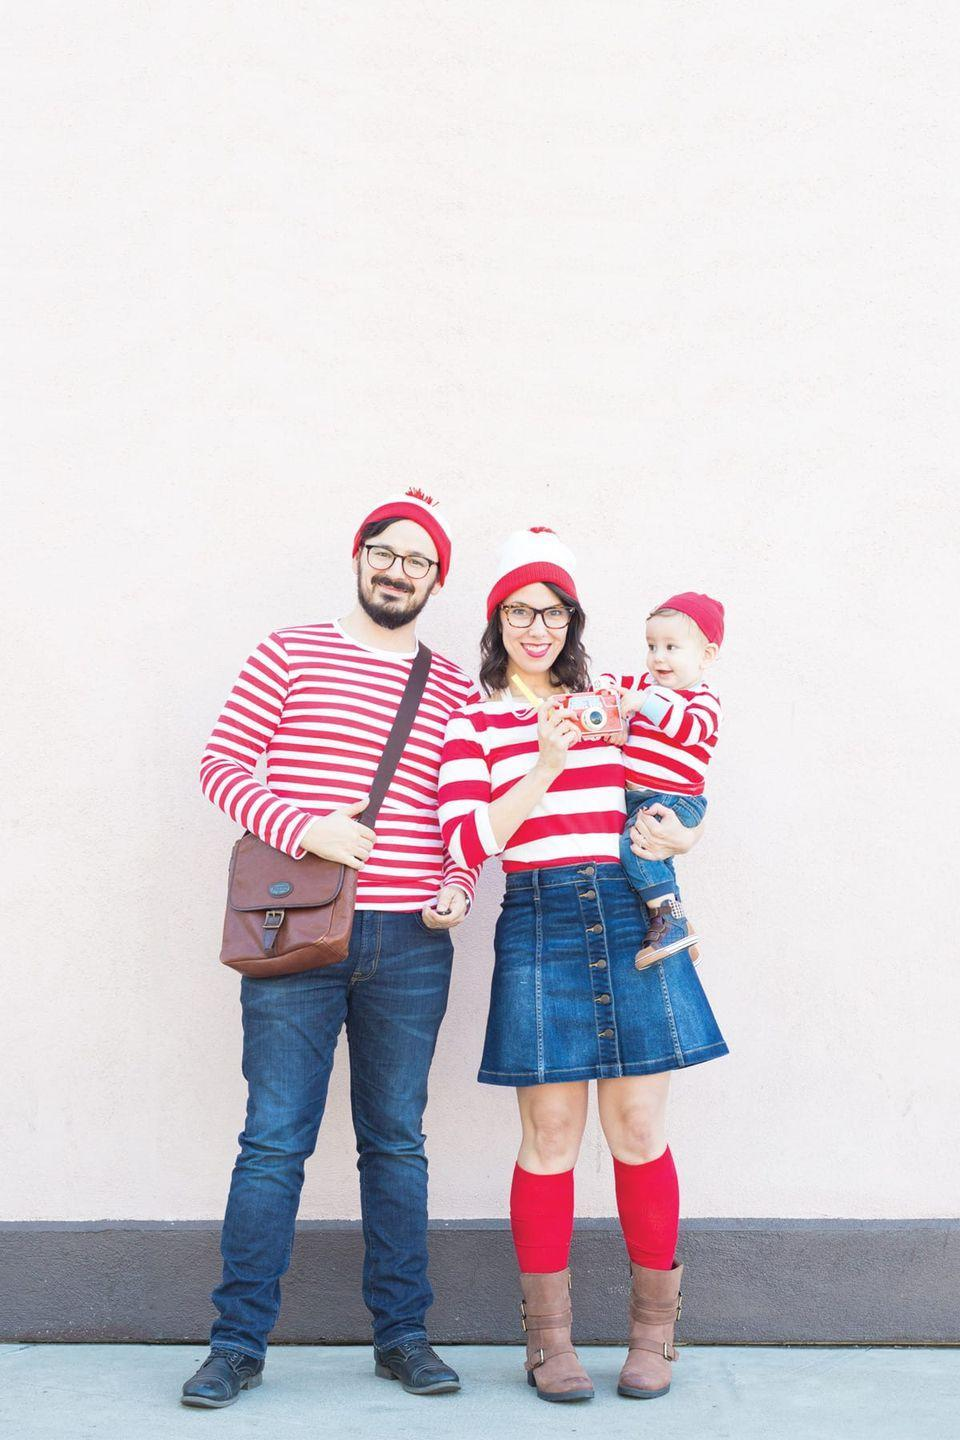 """<p>Here's a <em><a href=""""https://lovelyindeed.com/wheres-waldo-costume-family-halloween/"""" rel=""""nofollow noopener"""" target=""""_blank"""" data-ylk=""""slk:Where's Waldo?"""" class=""""link rapid-noclick-resp"""">Where's Waldo?</a></em> group costume idea that will satisfy each person in your family from mom and pop to tot.</p>"""